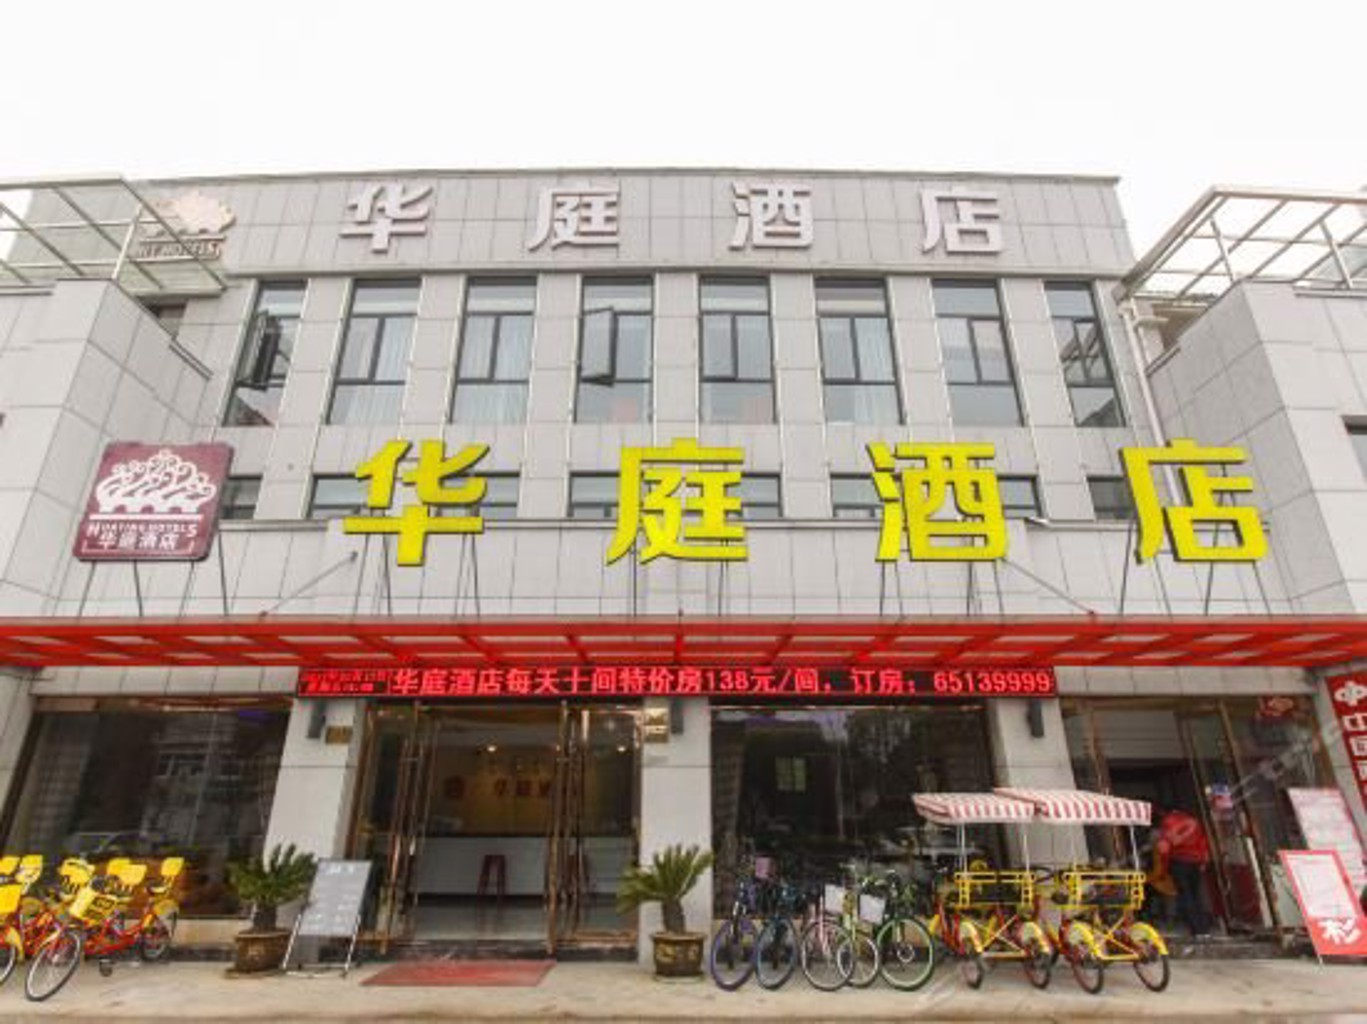 Gallery image of Huating Hotel